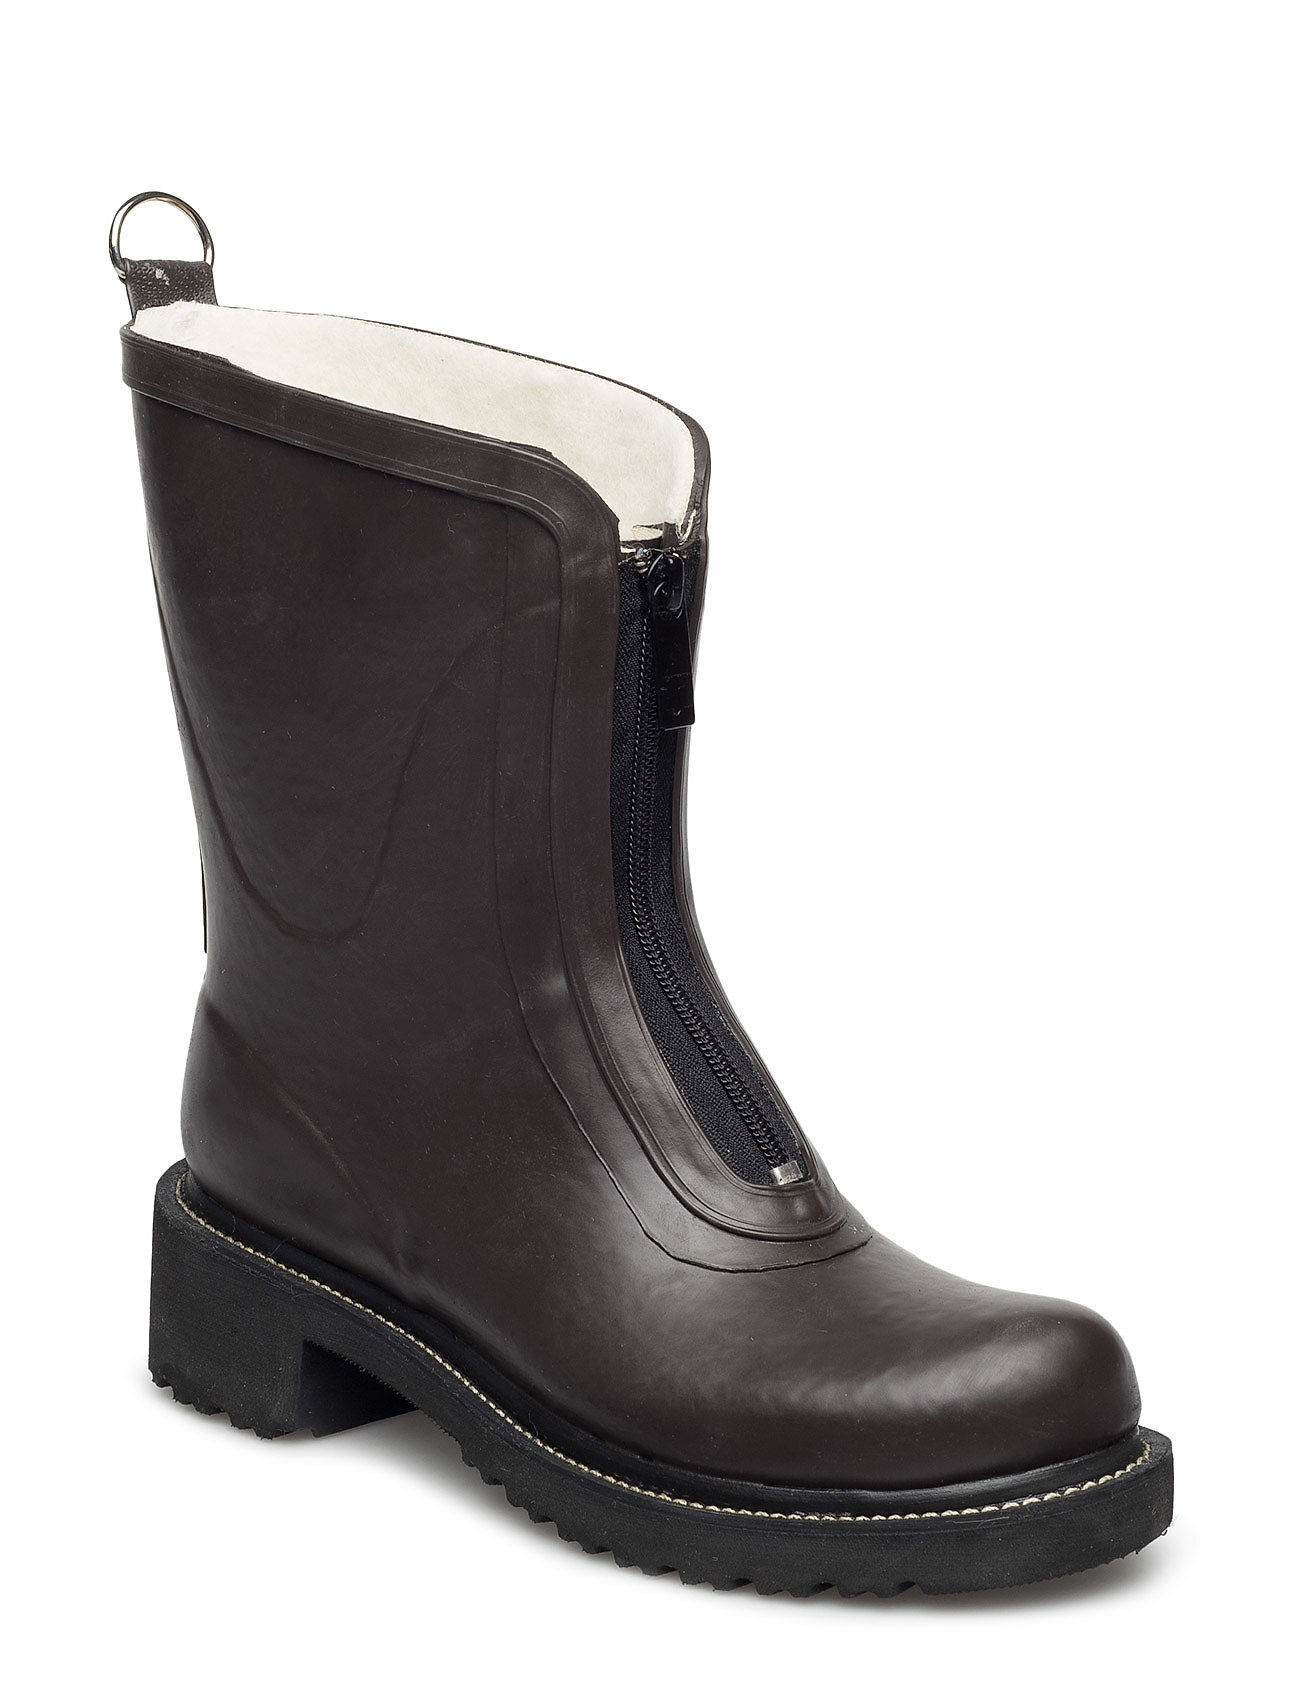 Ilse Jacobsen Rubber boots - BROWN